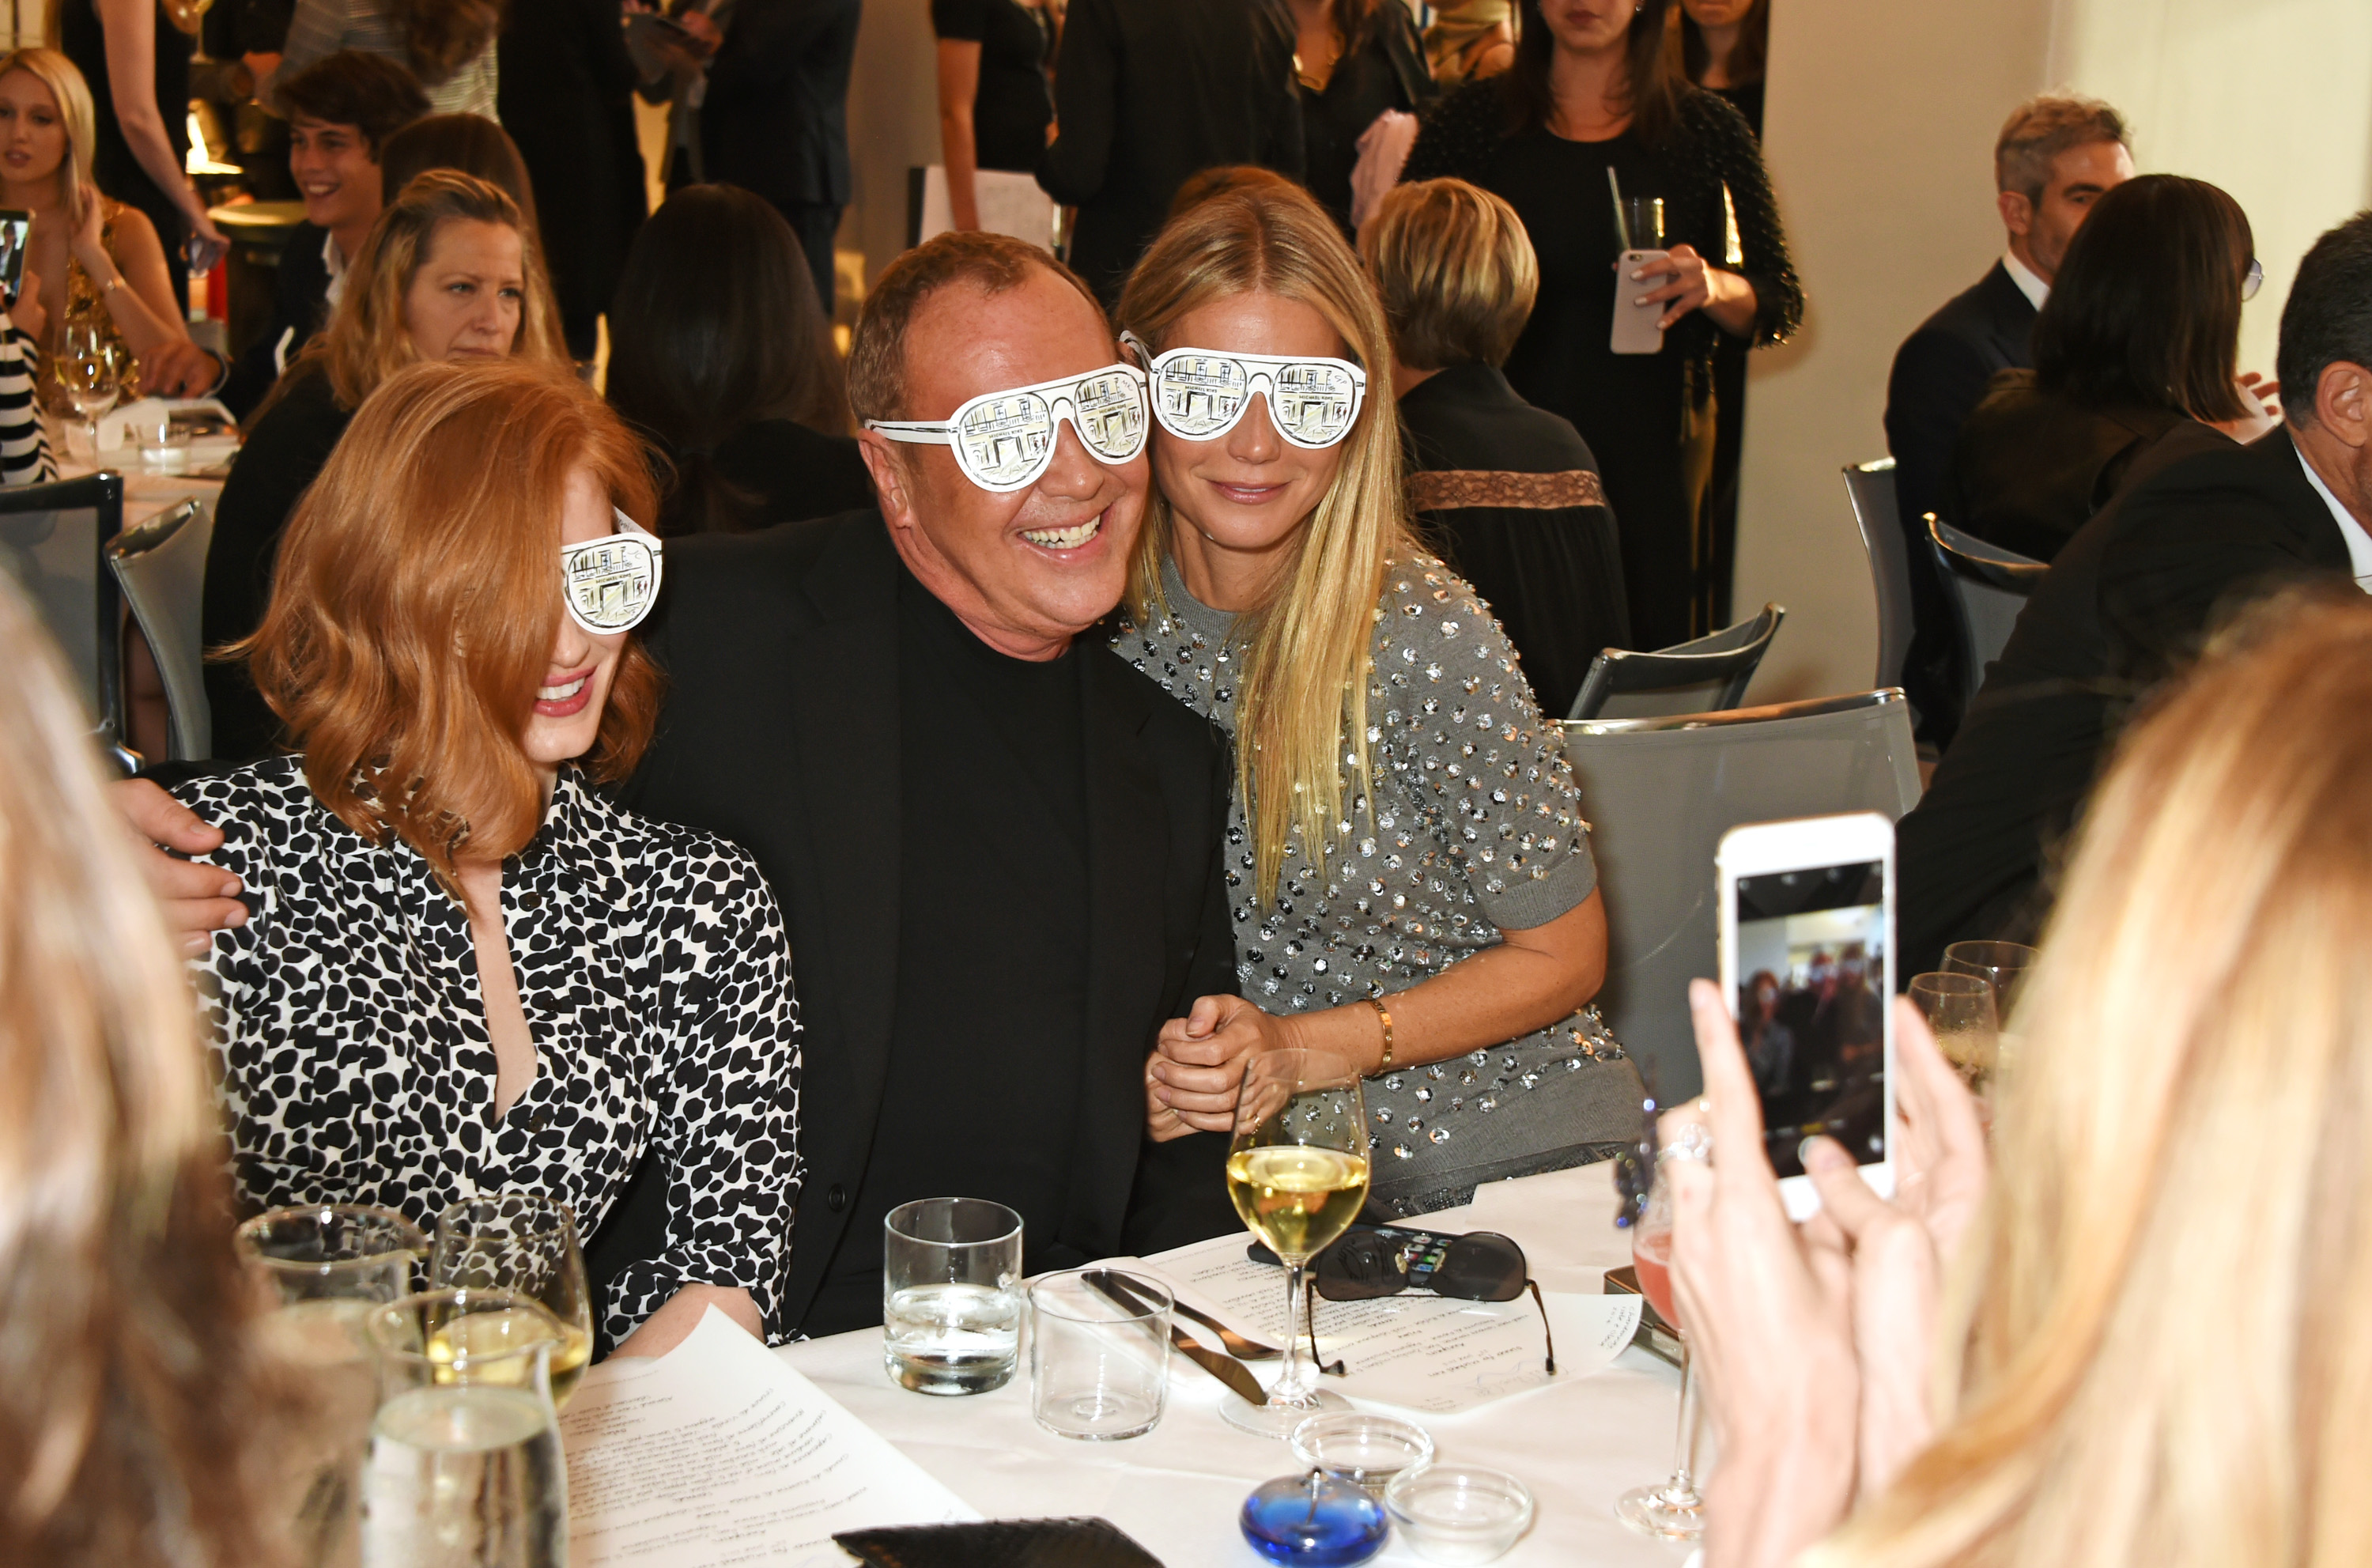 Michael Kors Londra, le foto del party con Gwyneth Paltrow